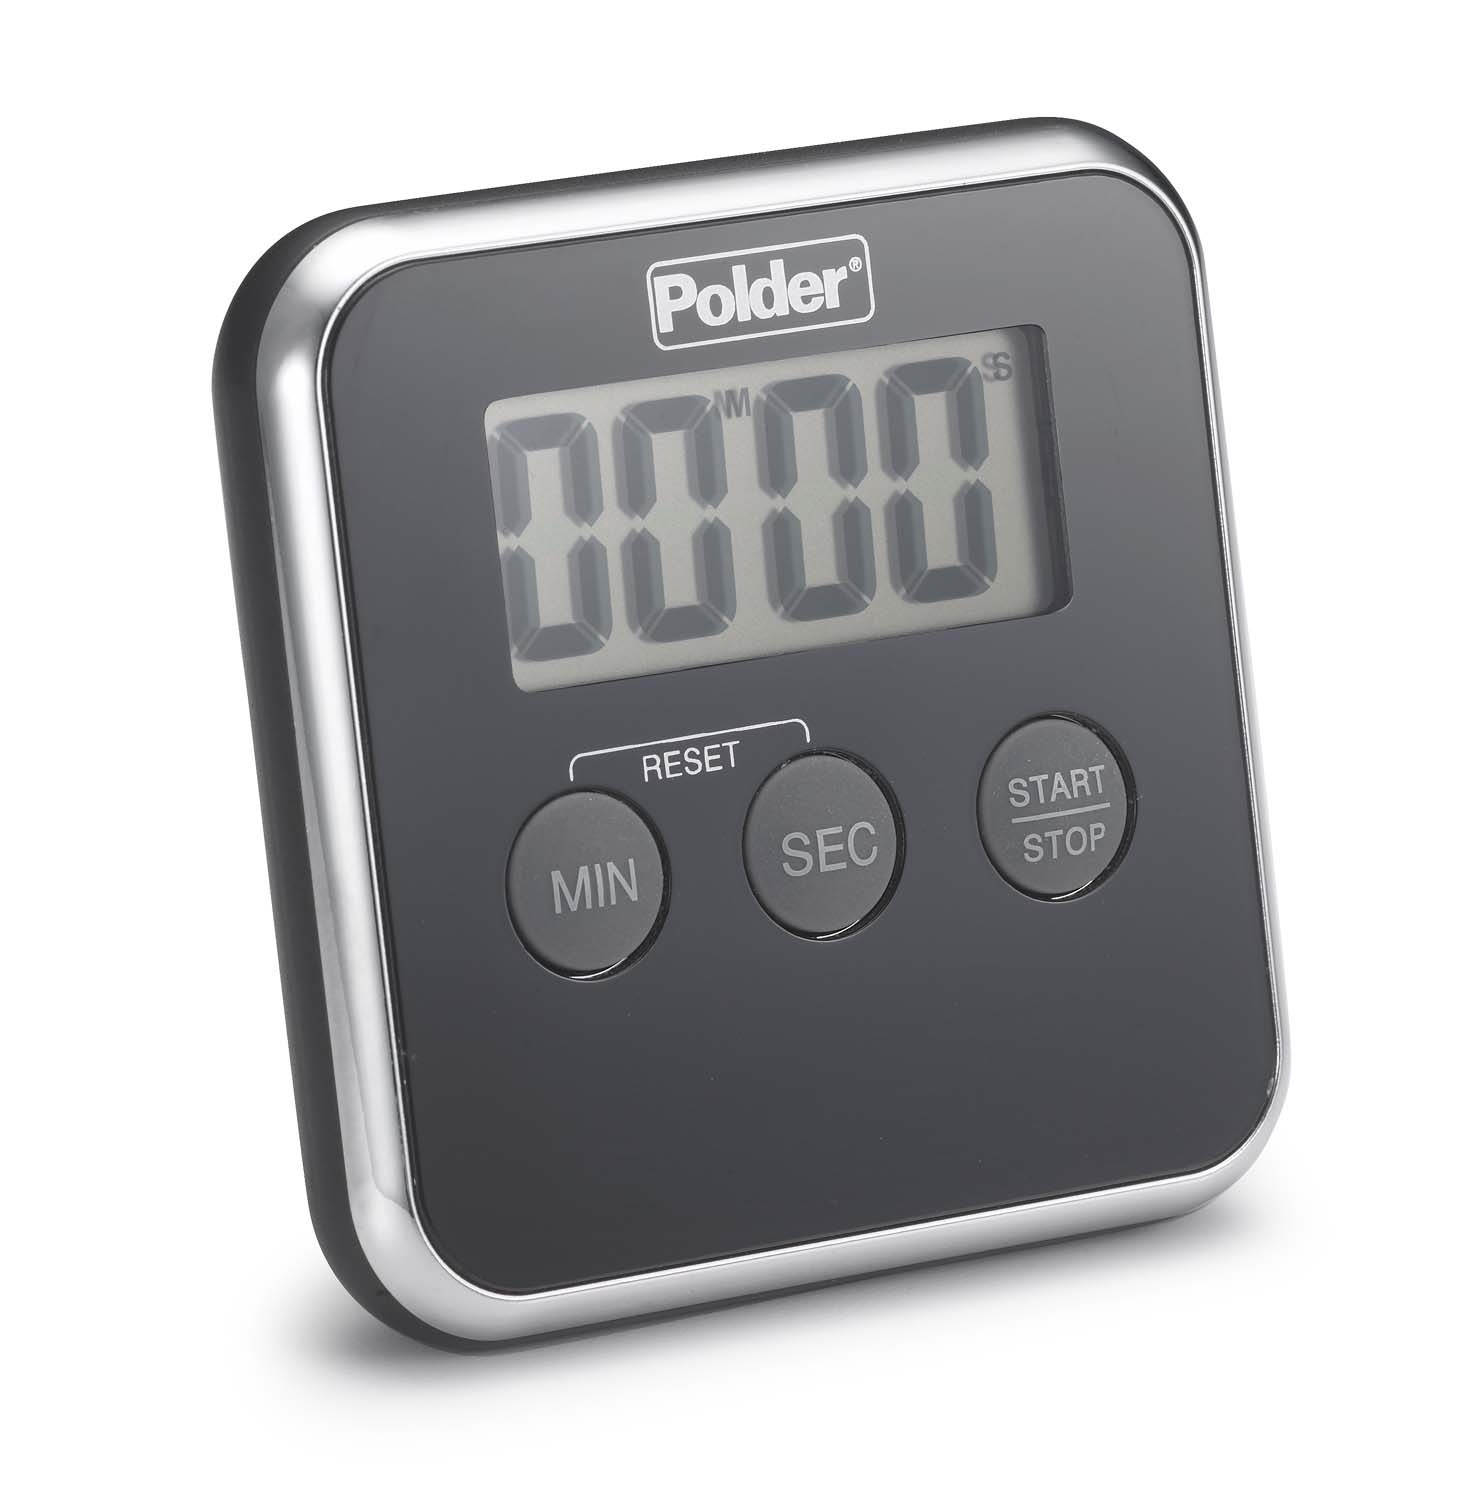 Polder Digital Kitchen Timer, Black